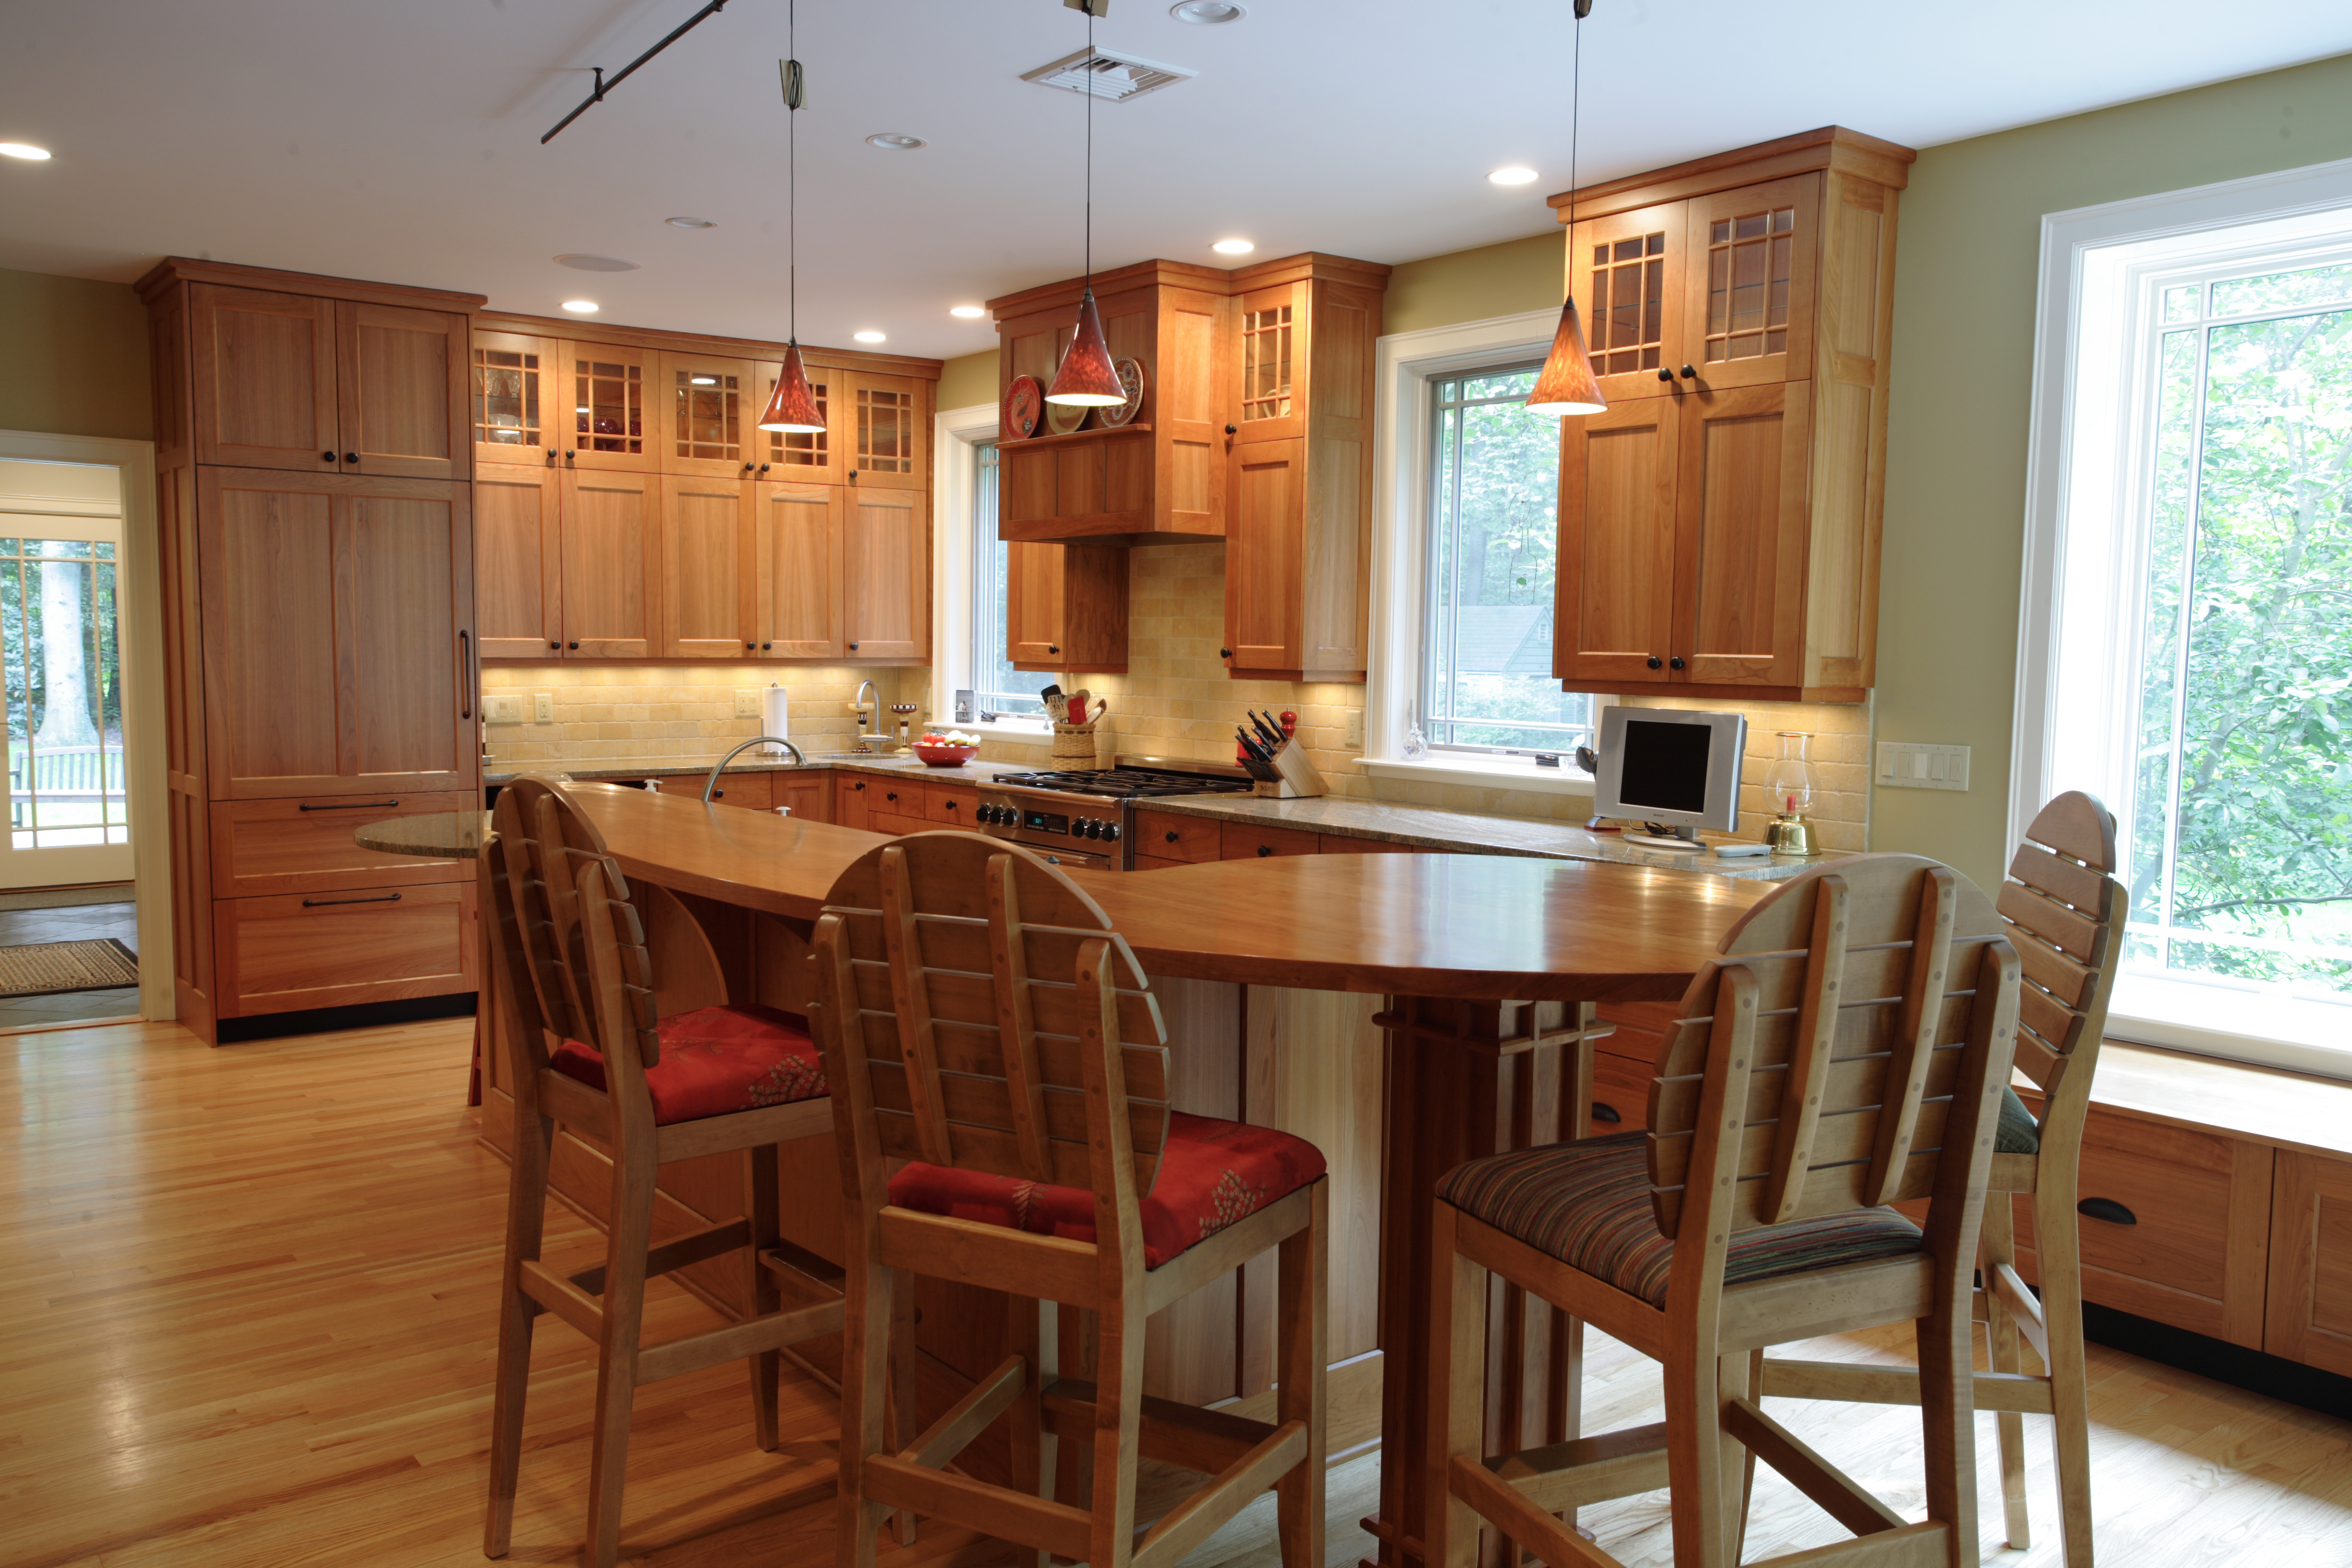 schonheit countertops laminate maryland outdoor copper affordable furniture sch comelling countertop nheit makeover countert kitchen remodel